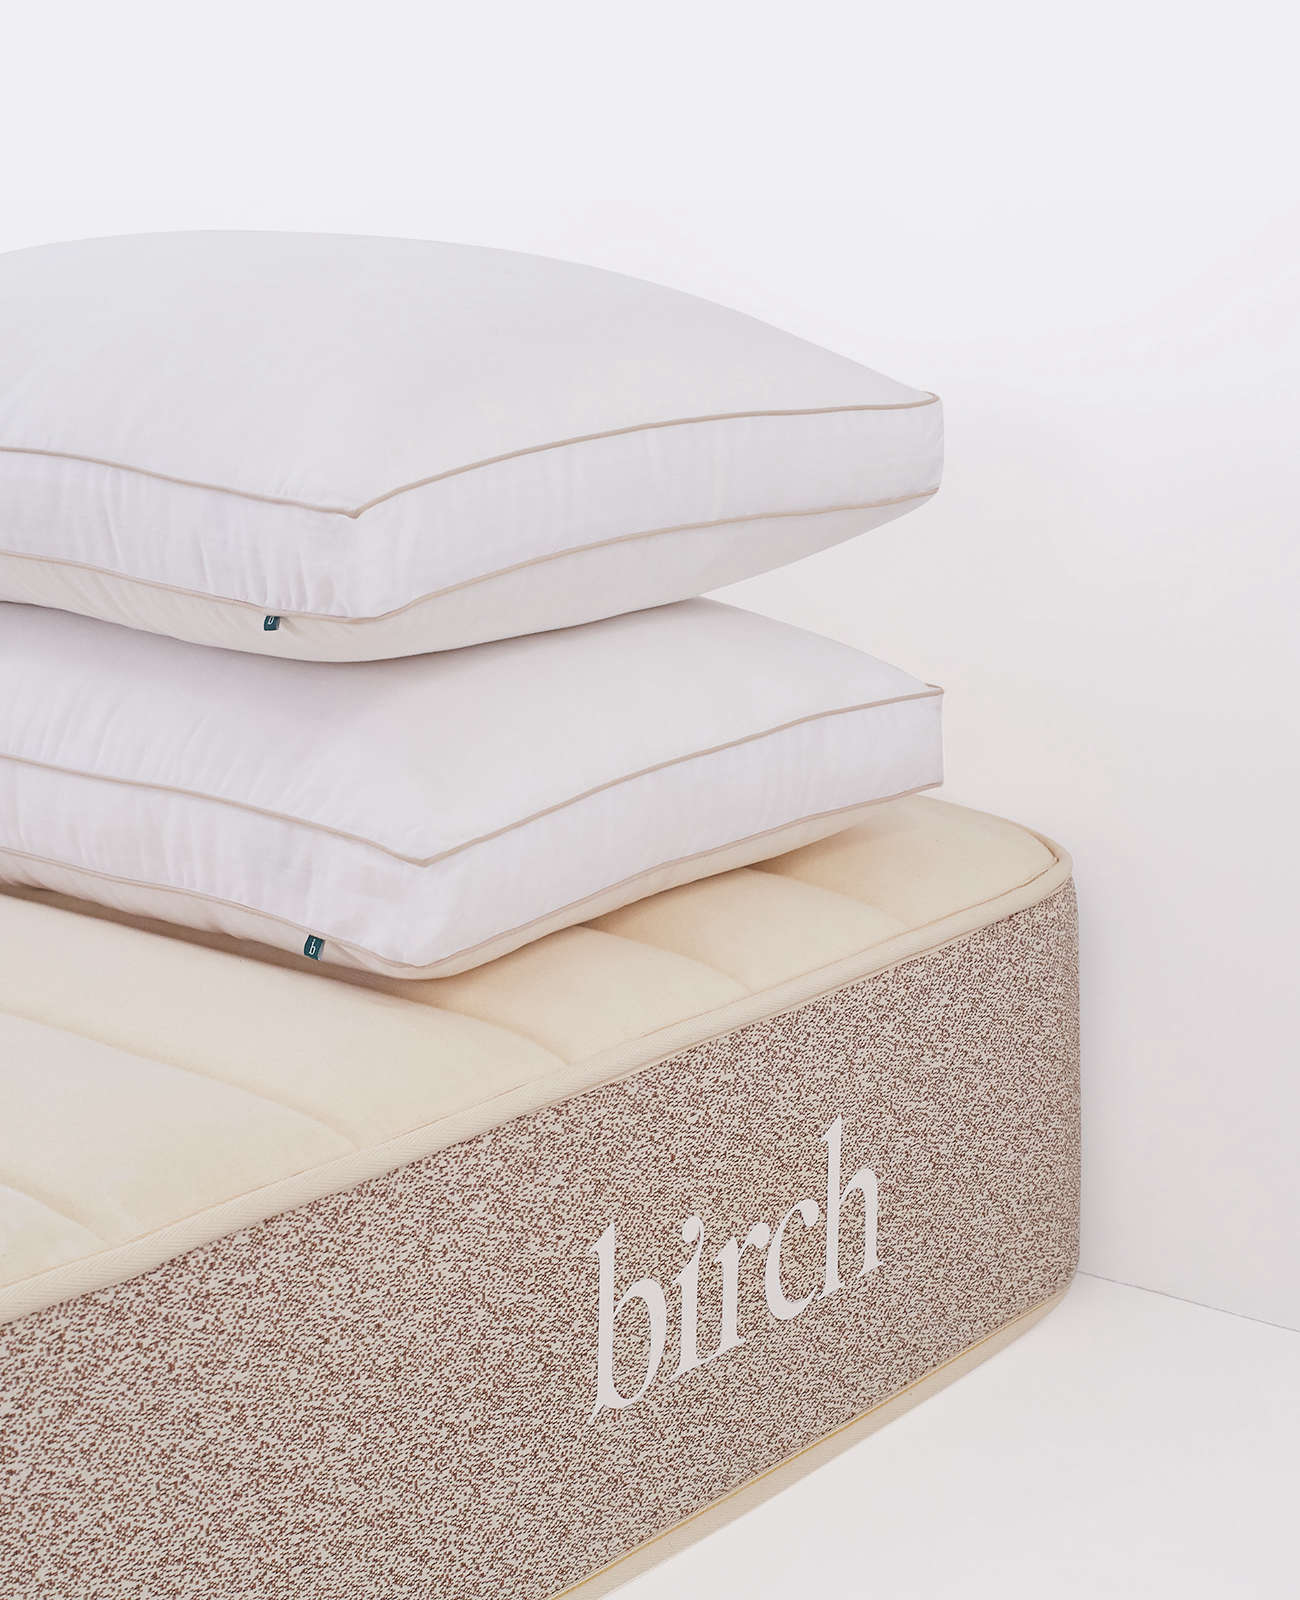 Each mattress also comes with two Eco-Rest Pillows with organic, fair trade cotton exteriors and fillings made from 0 percent recycled water bottles (a $9 value). Also available for purchase are the company's Organic Pillows, $99 each for the standard size (and currently out of stock).